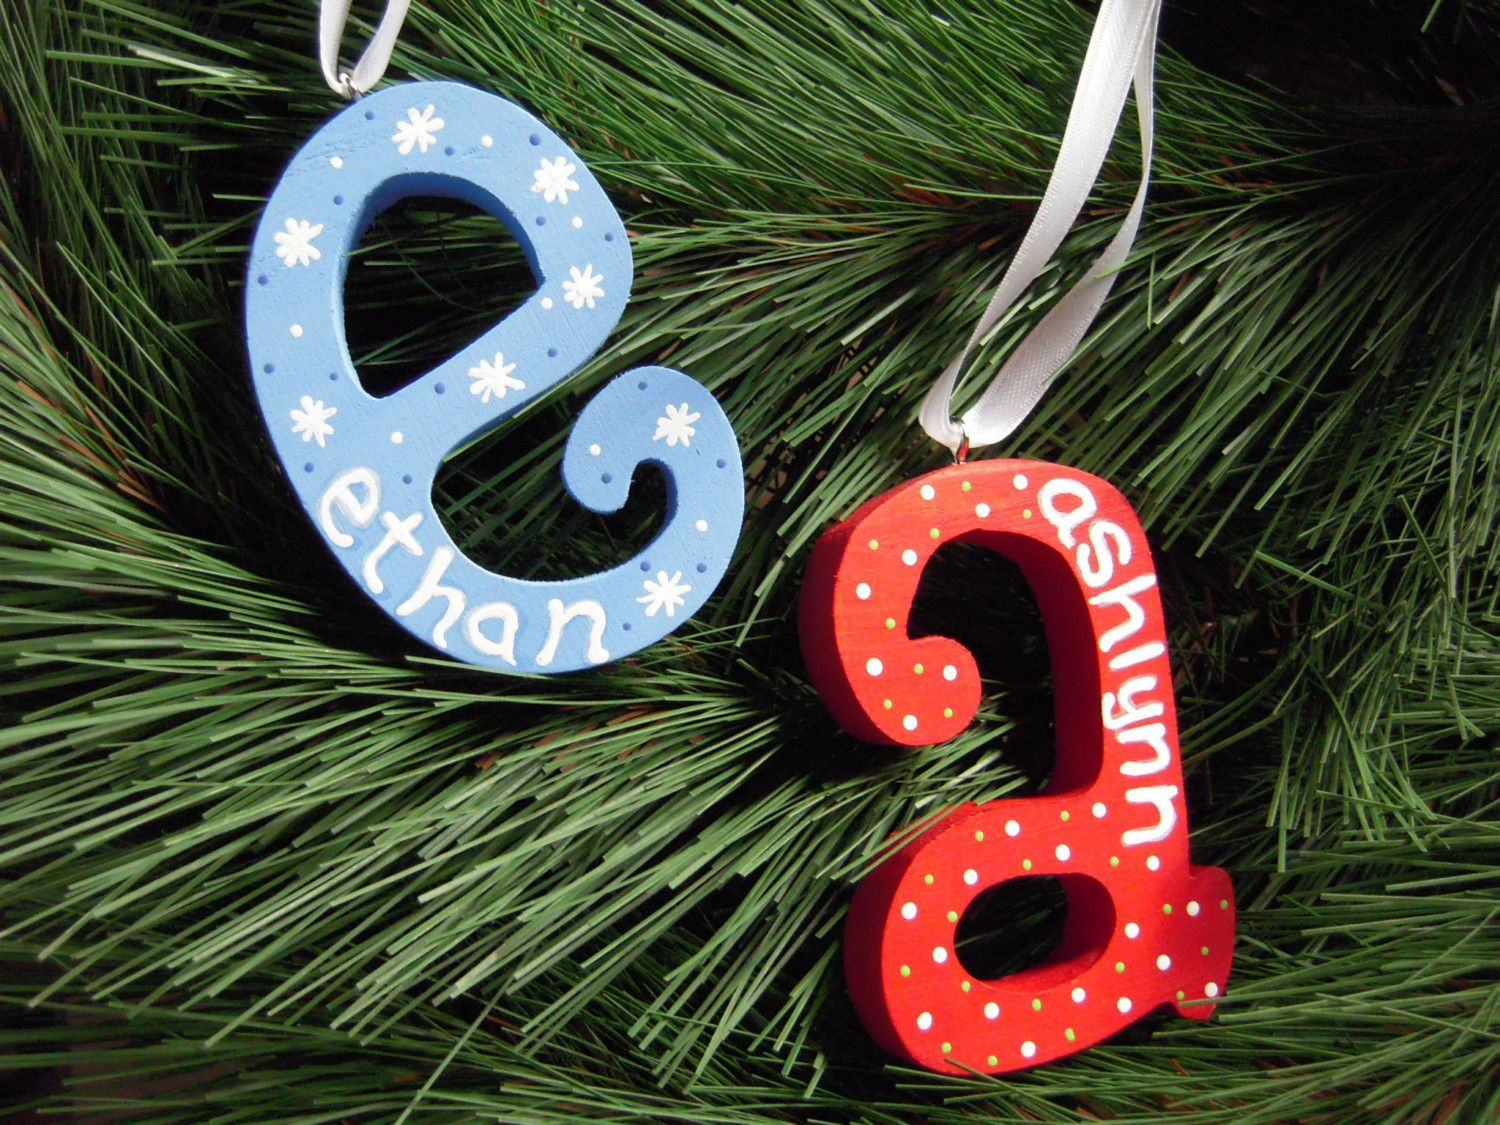 cute initial ornament - paint wooden letter, then use paint pen to write name on it, and snowflakes or polka dots